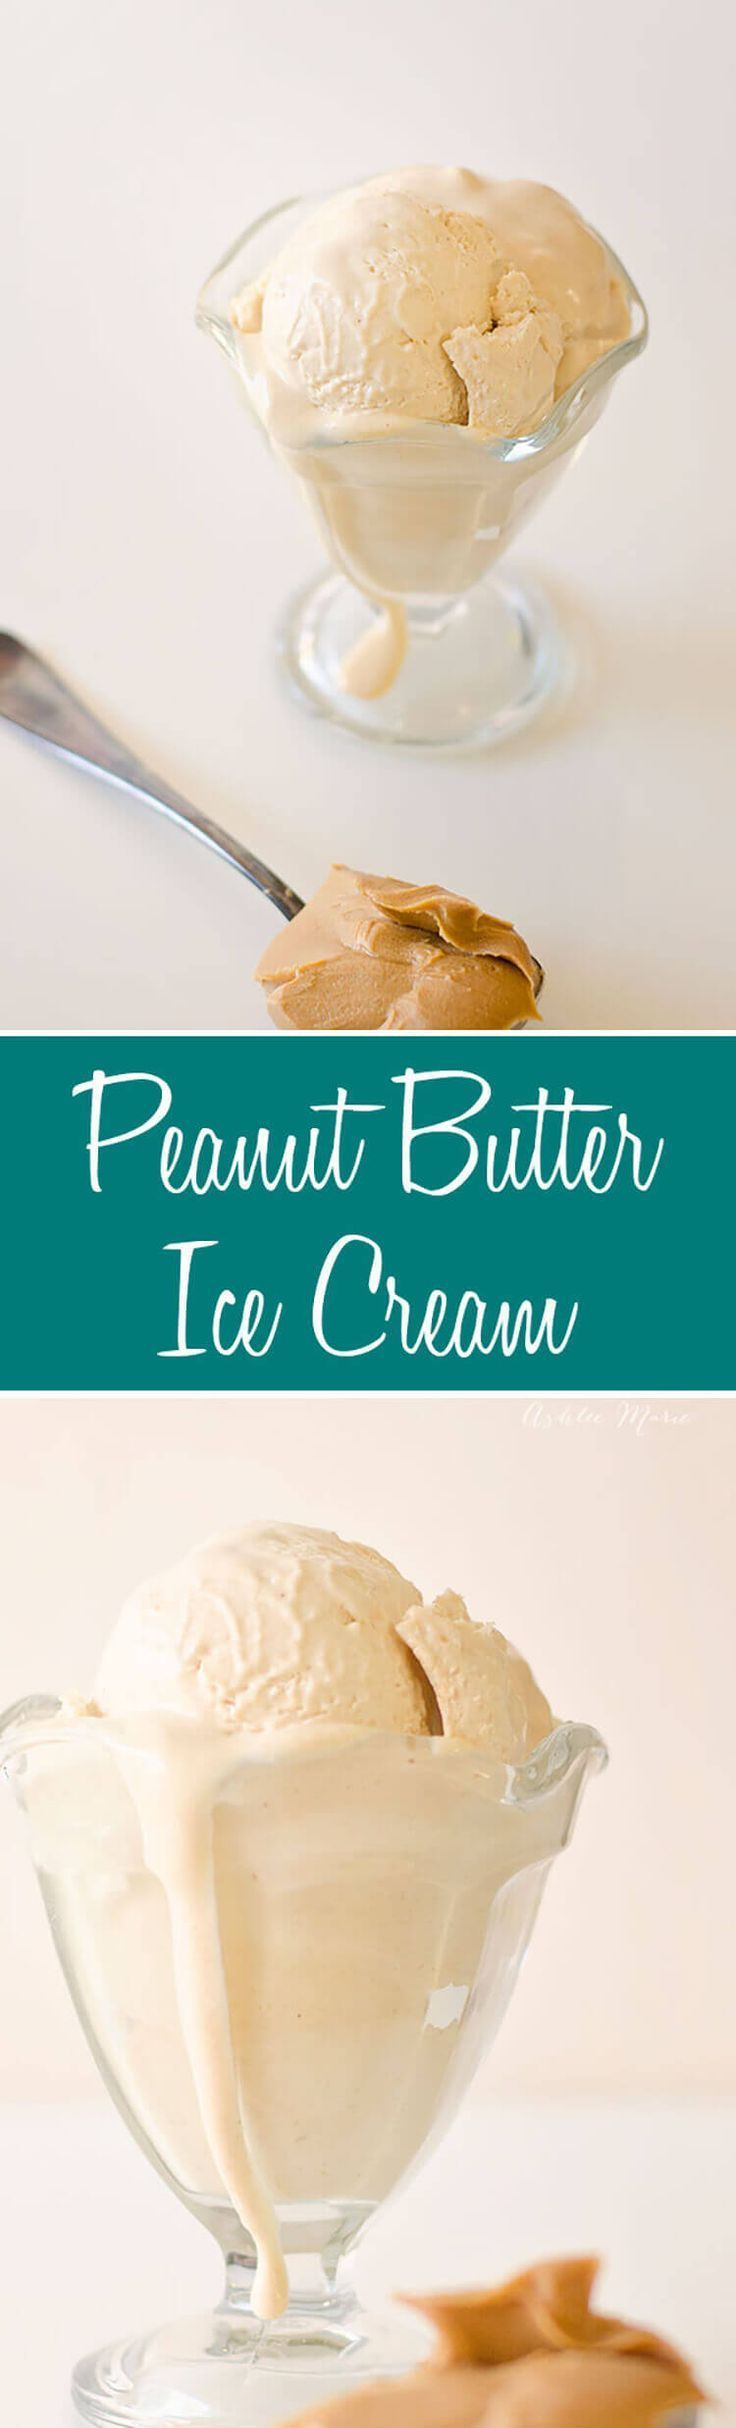 Peanut Butter Ice Cream Recipe. this creamy peanut butter ice cream is always a huge hit. I get requests for it all the time. #PBicecream